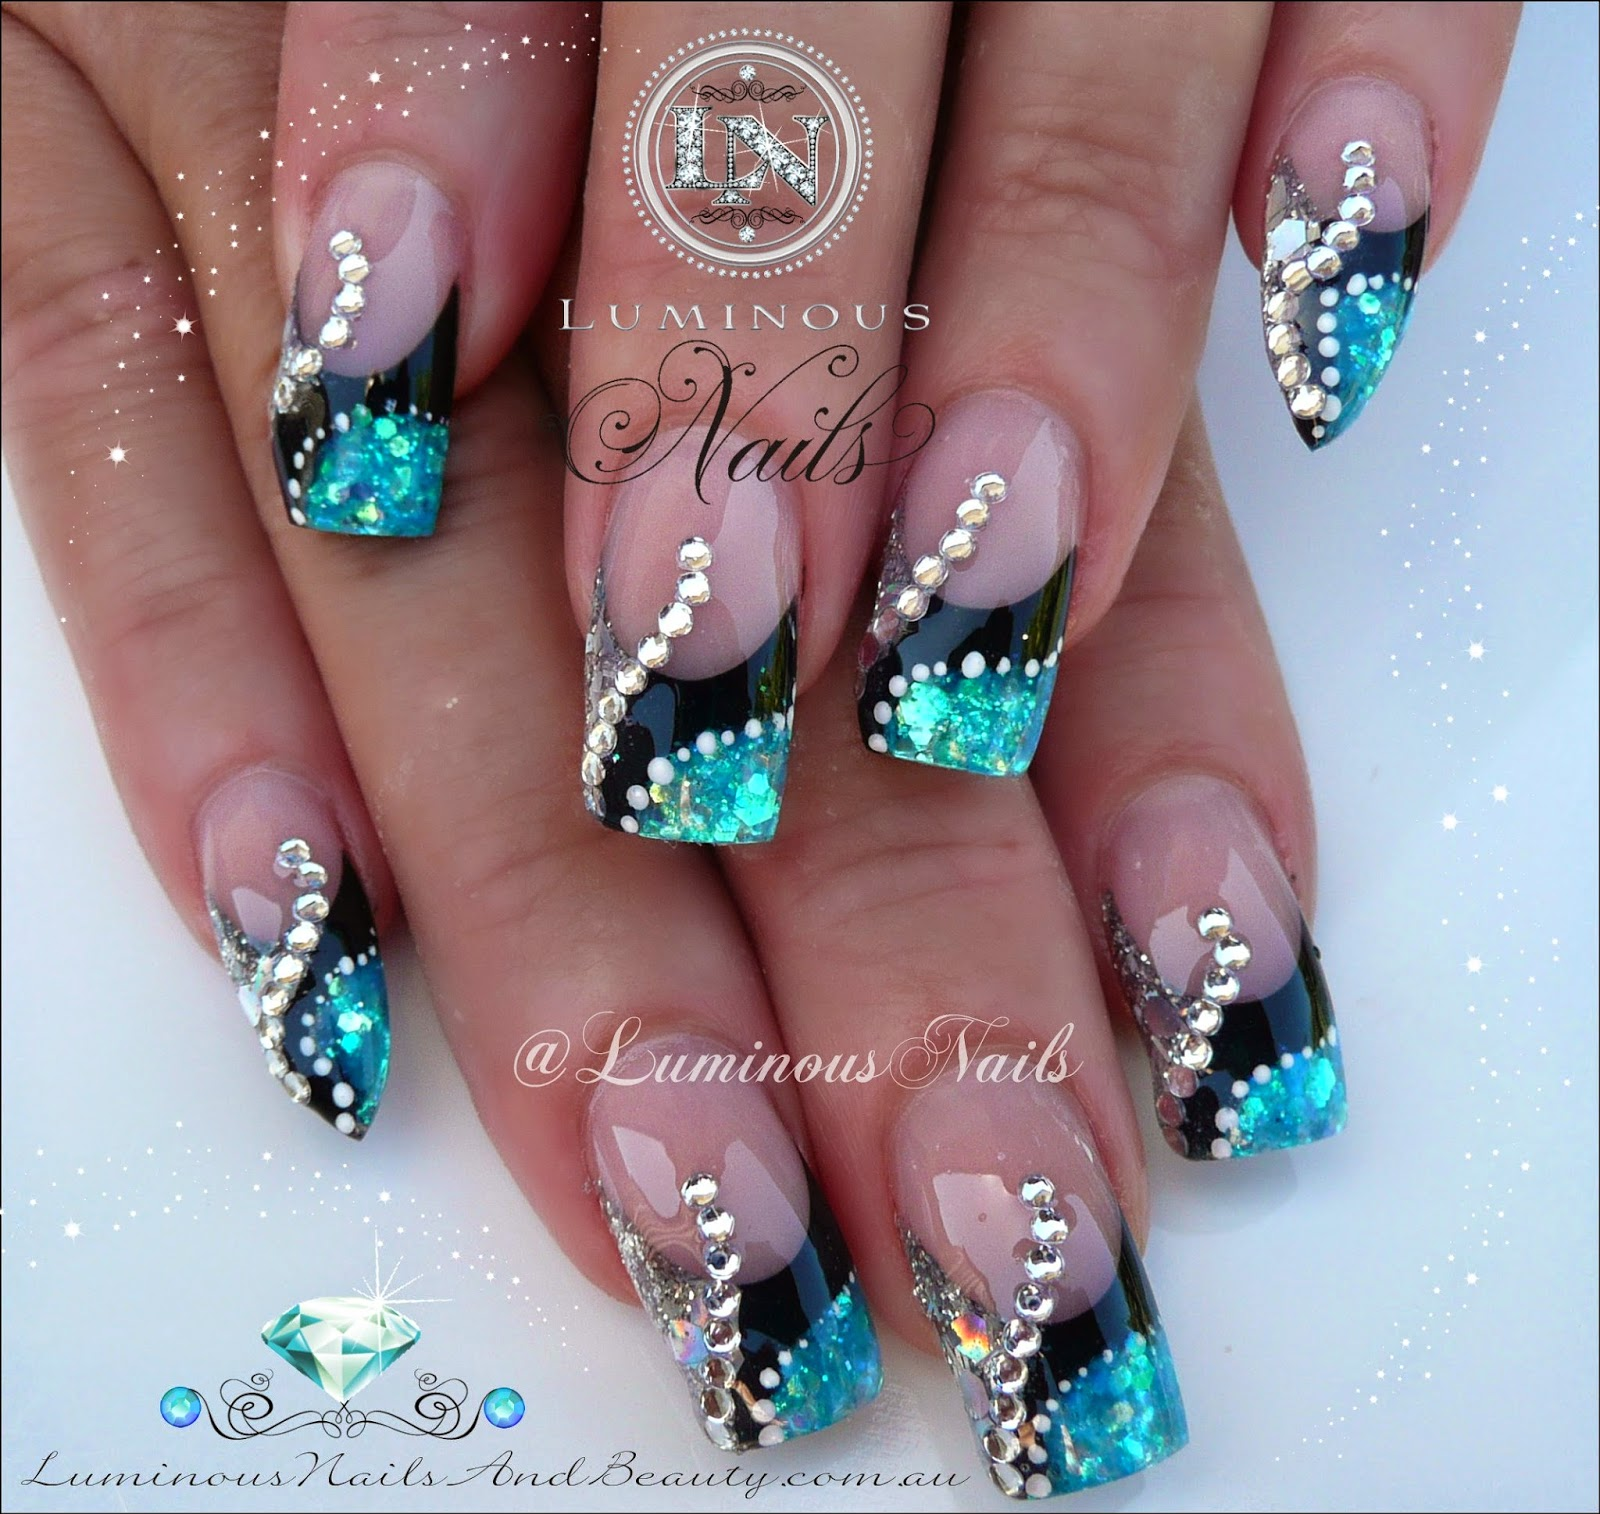 Awesome Nail Art Designs Sparkle Ensign - Nail Art Ideas - morihati.com